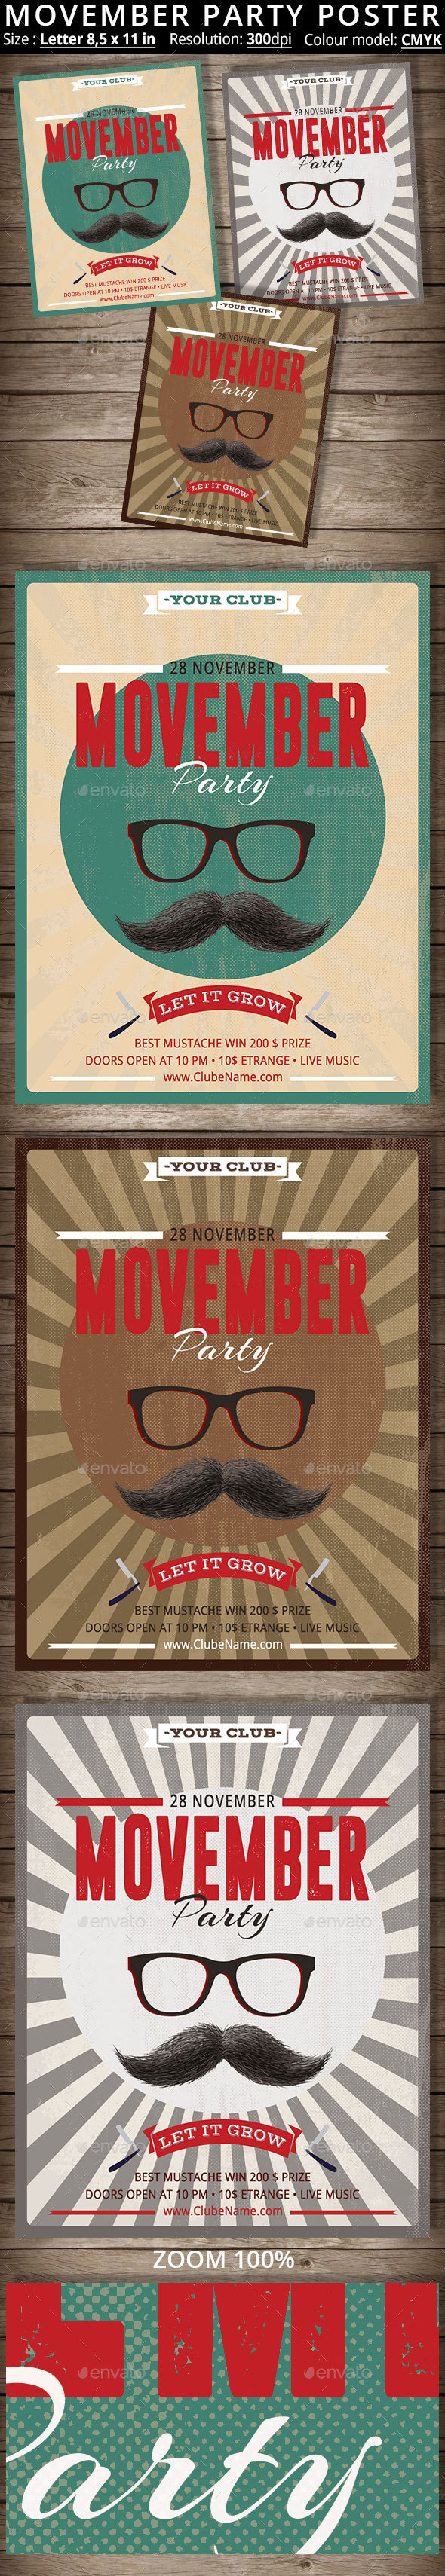 Movember Party Poster - Events Flyers